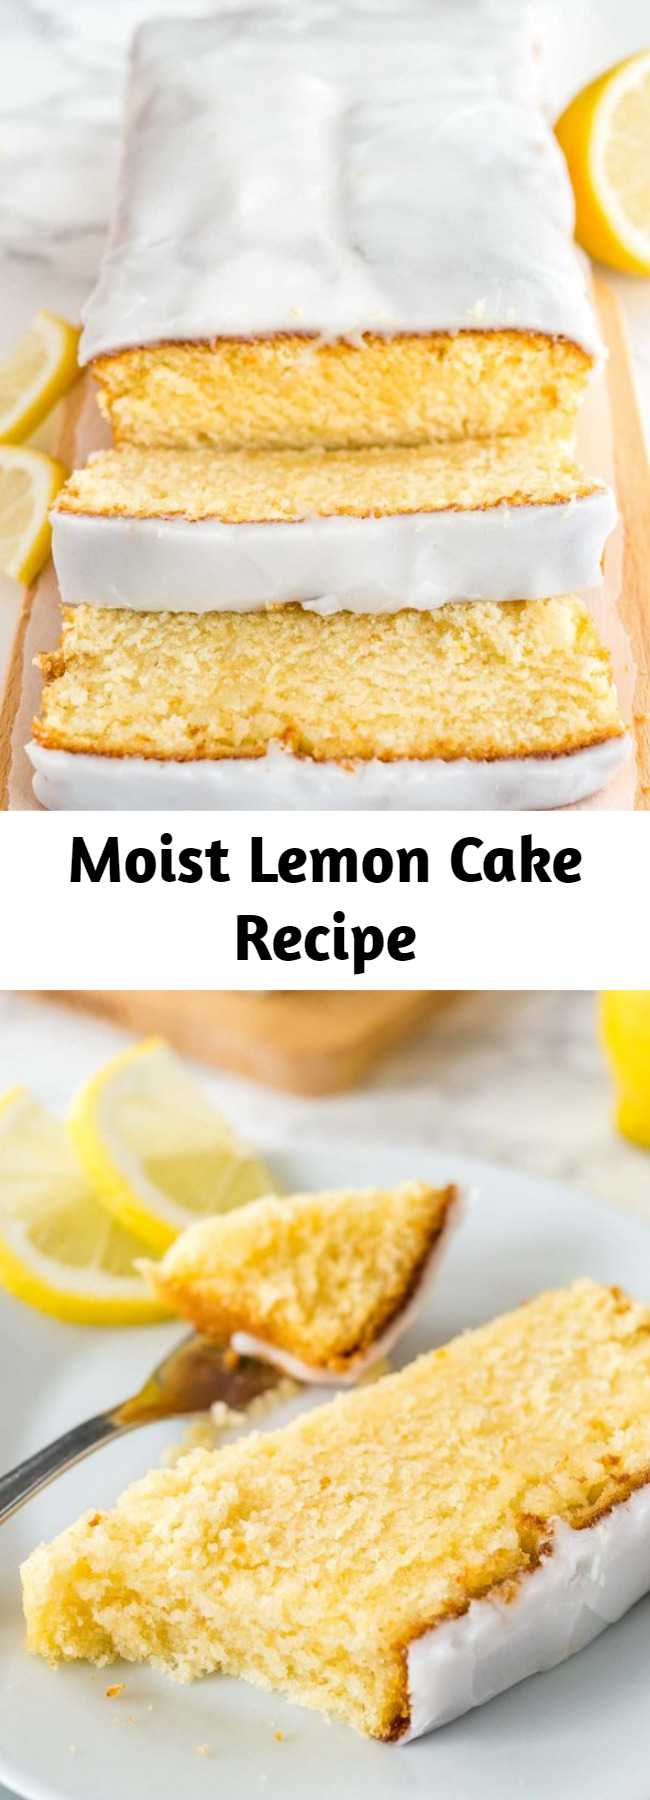 This moist Lemon Cake Recipe is fluffy, tangy and so easy to make from scratch! Every bite of this supremely moist pound cake is bursting with lemon flavor. If you like the Starbucks Lemon Loaf then you'll love this homemade lemon pound cake! #LemonCake #PoundCake